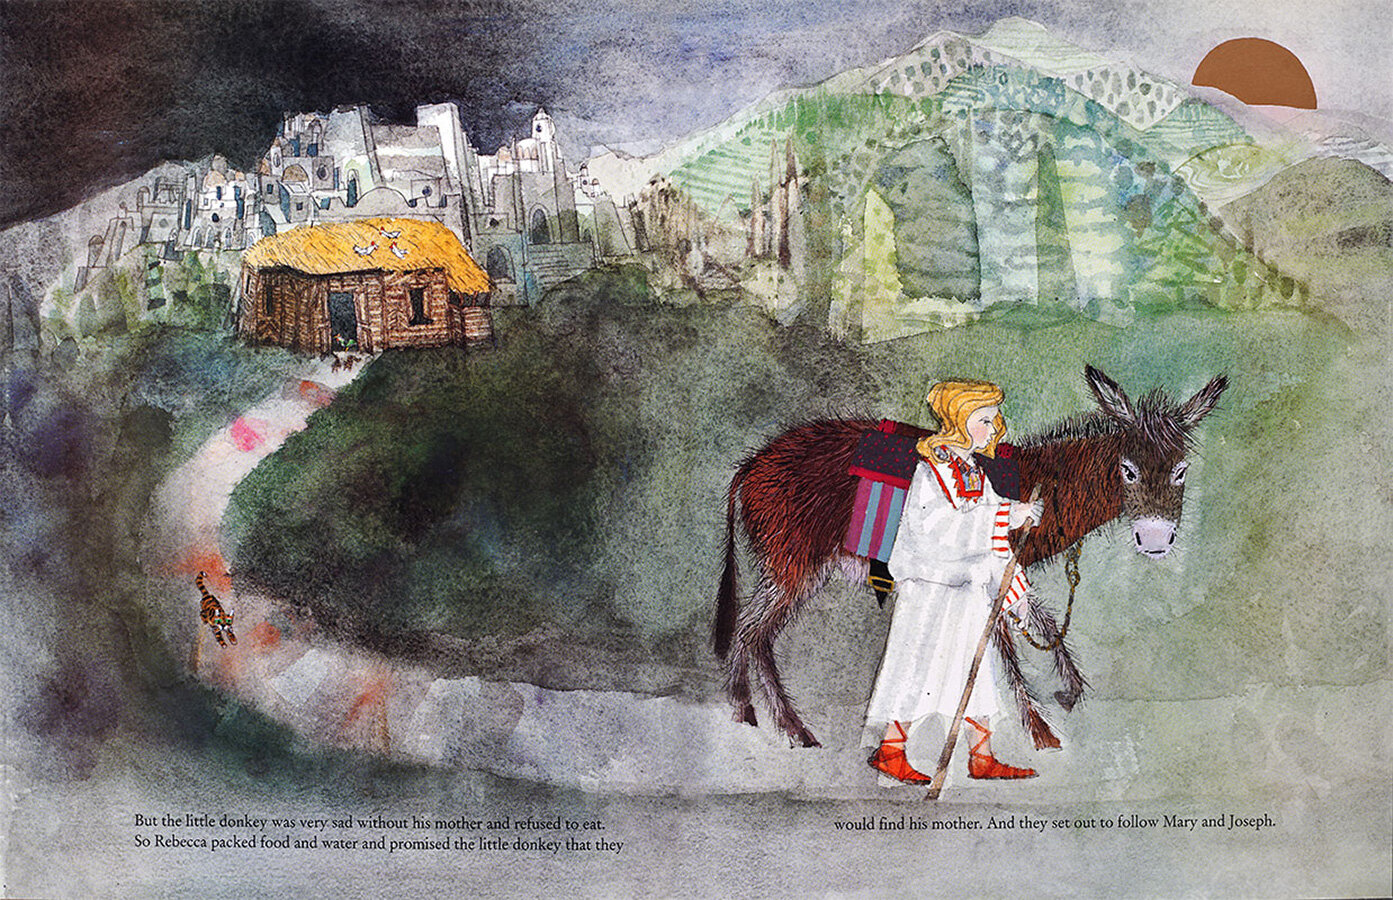 Rebecca-and-donkey-follow-Mary-and-Joseph-from-A-Christmas-Story-by-Brian-Wildsmith.jpg